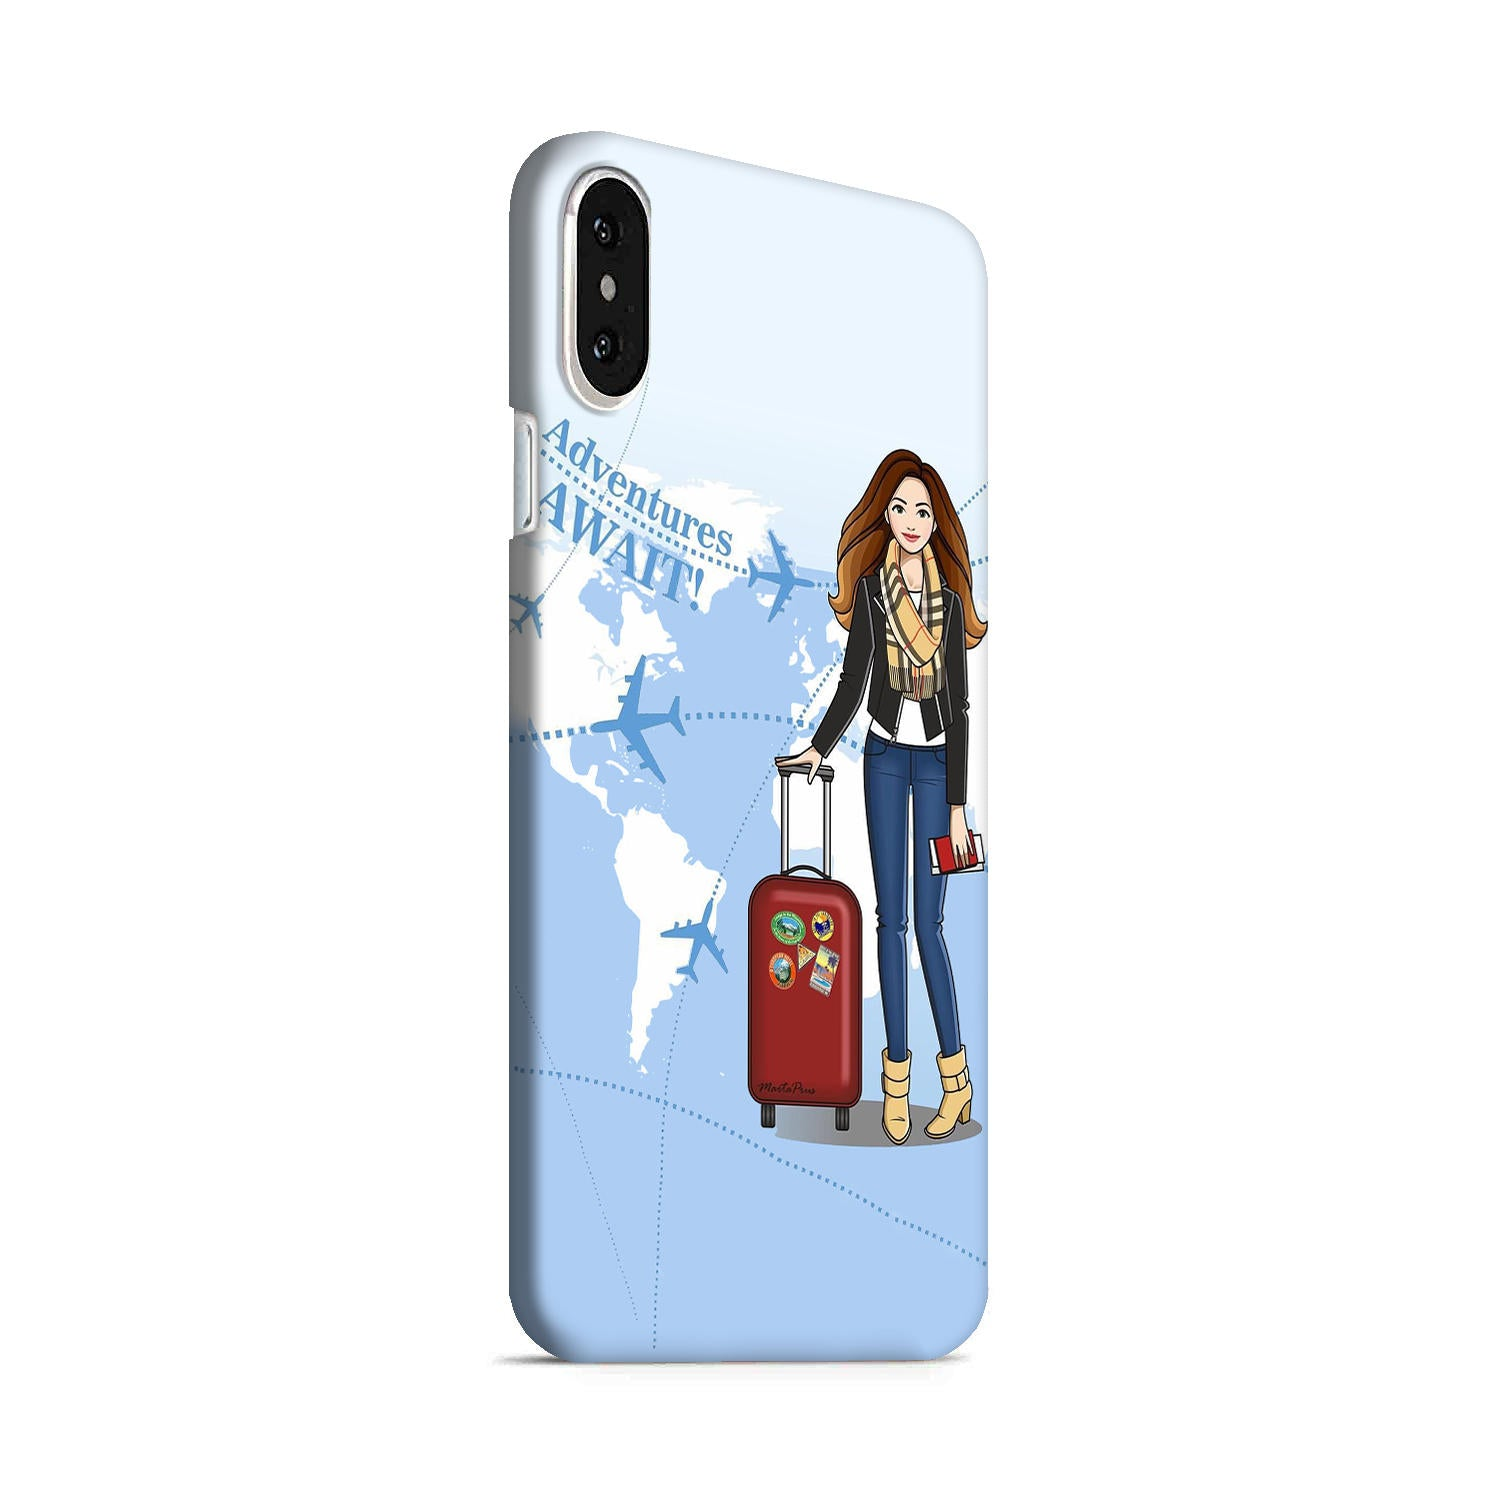 Girl Travel Adventure Await iPhone X Mobile Cover Case - MADANYU